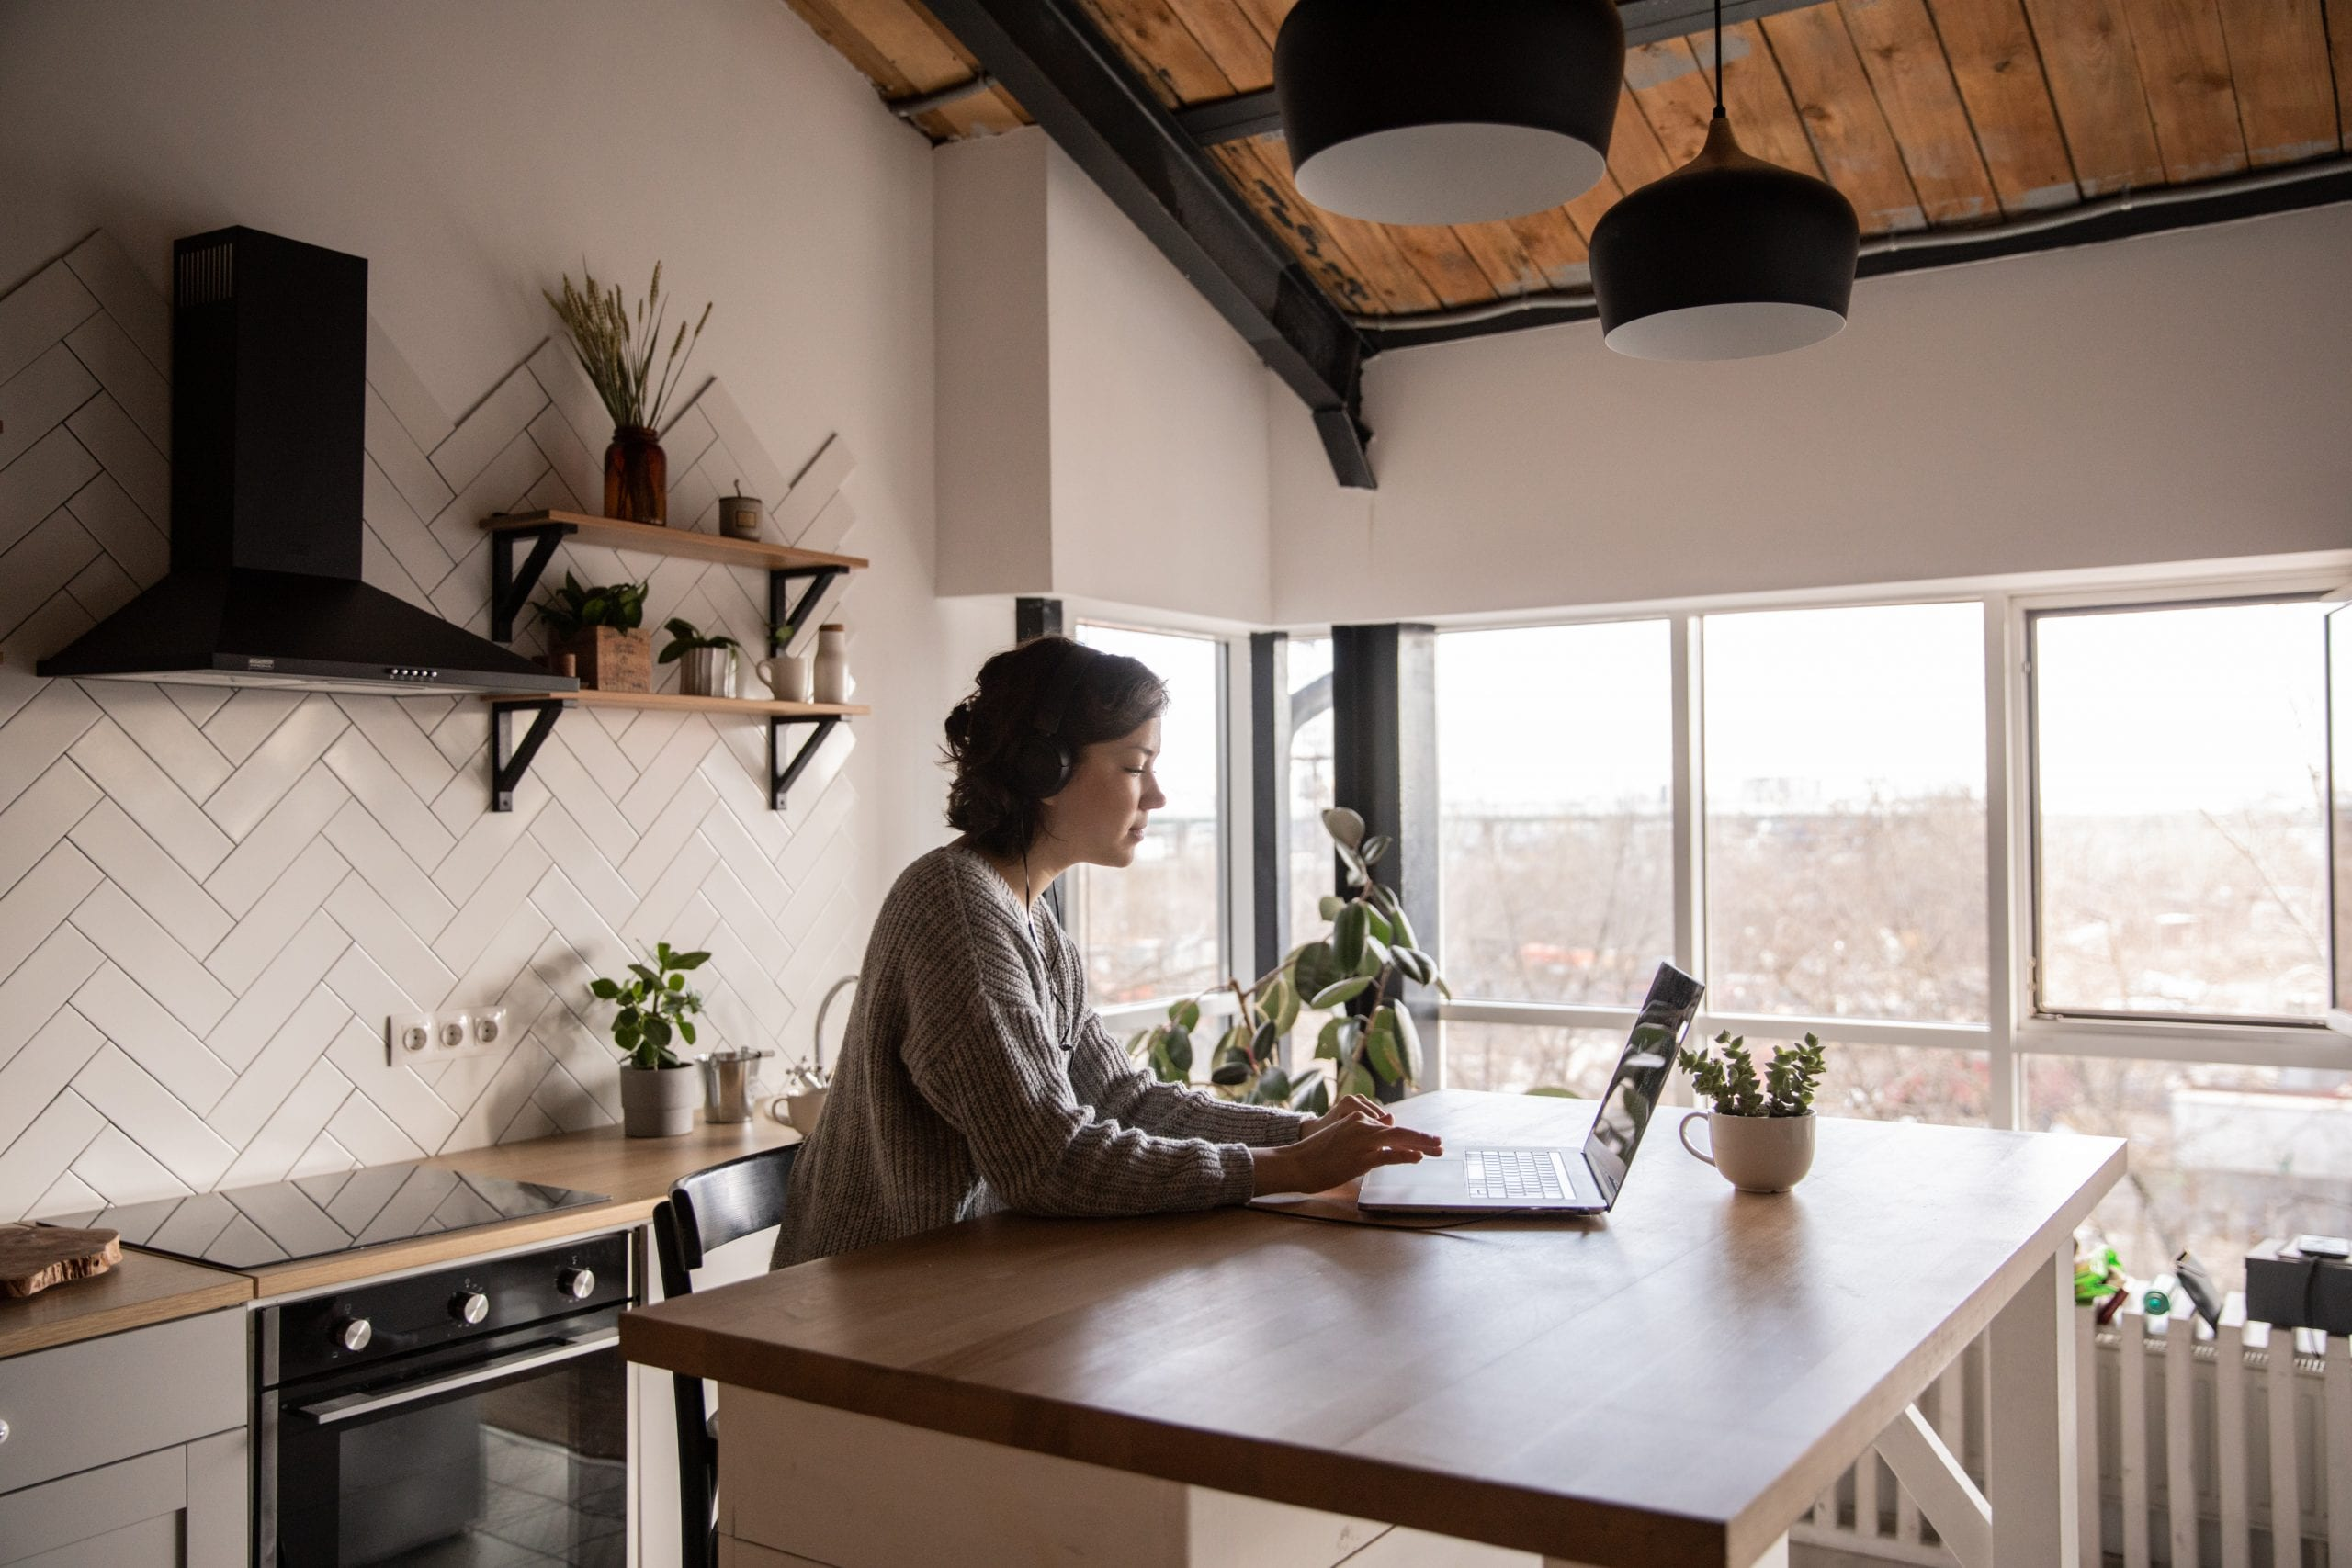 Women on her computer while sitting at her small kitchen table with stunningly gorgeous kitchen cabinet organizers, shelves and appliances are behind her.